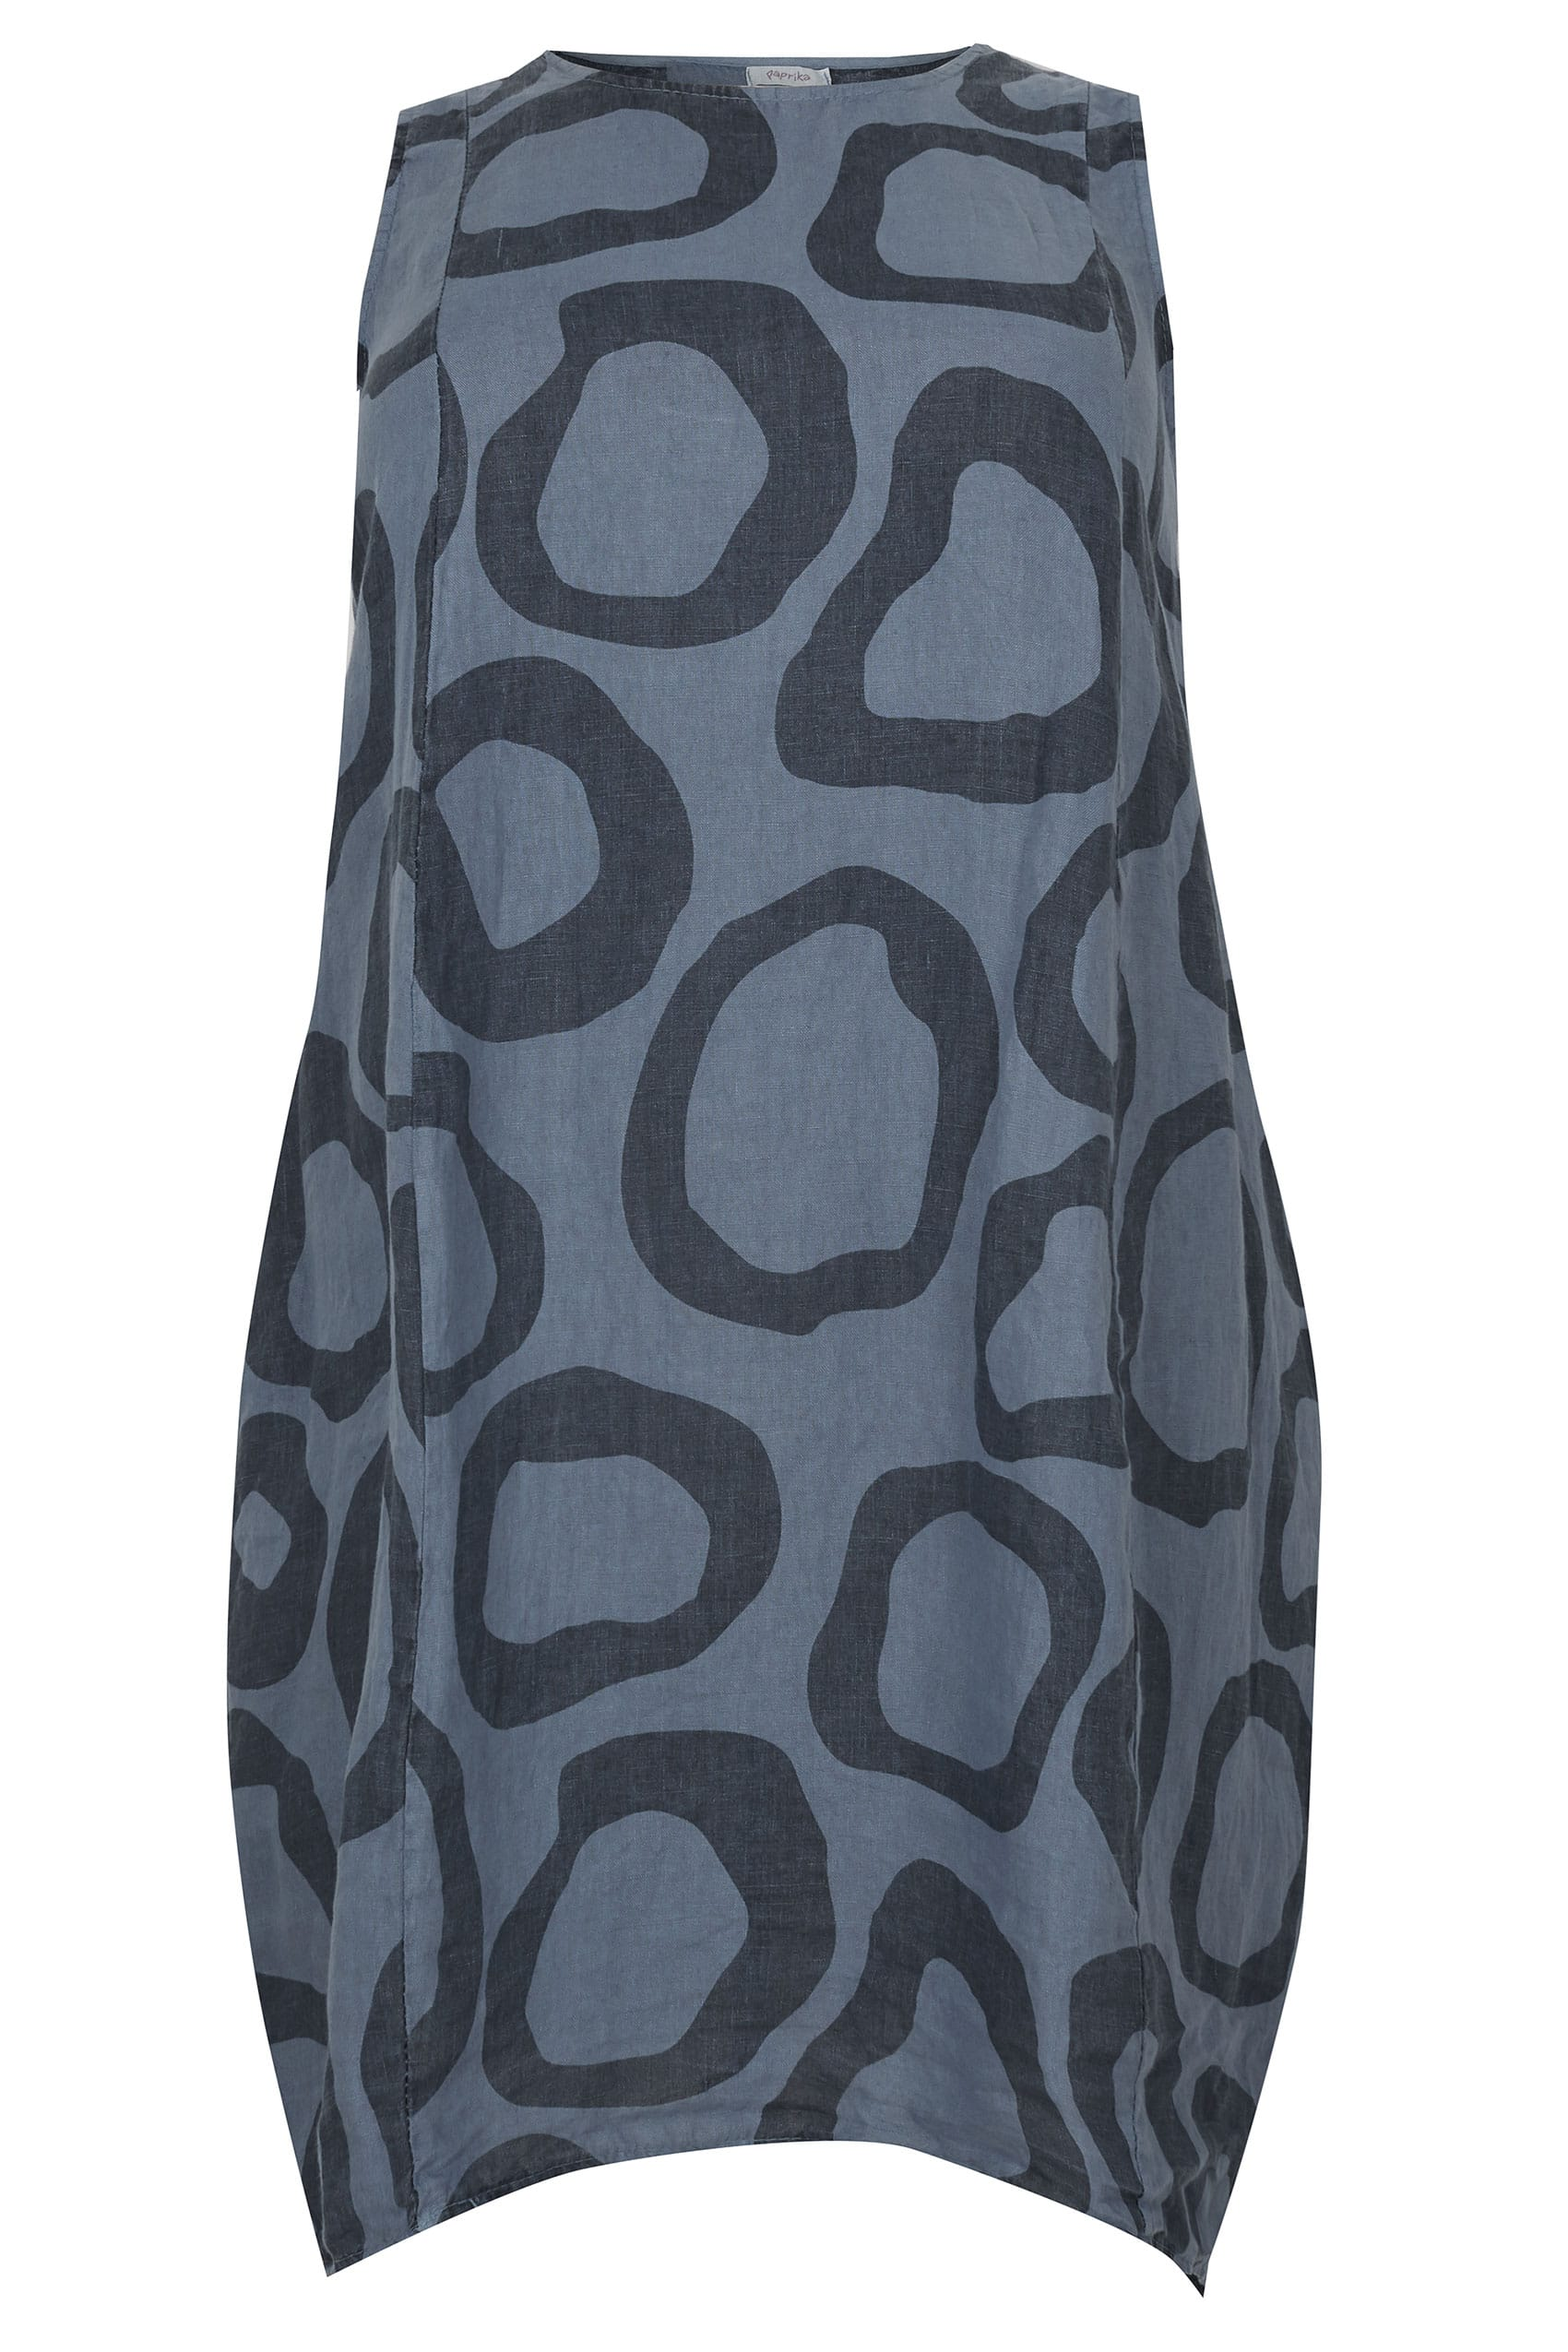 PAPRIKA Navy Circle Print Dress With Pockets, plus size 16 ...